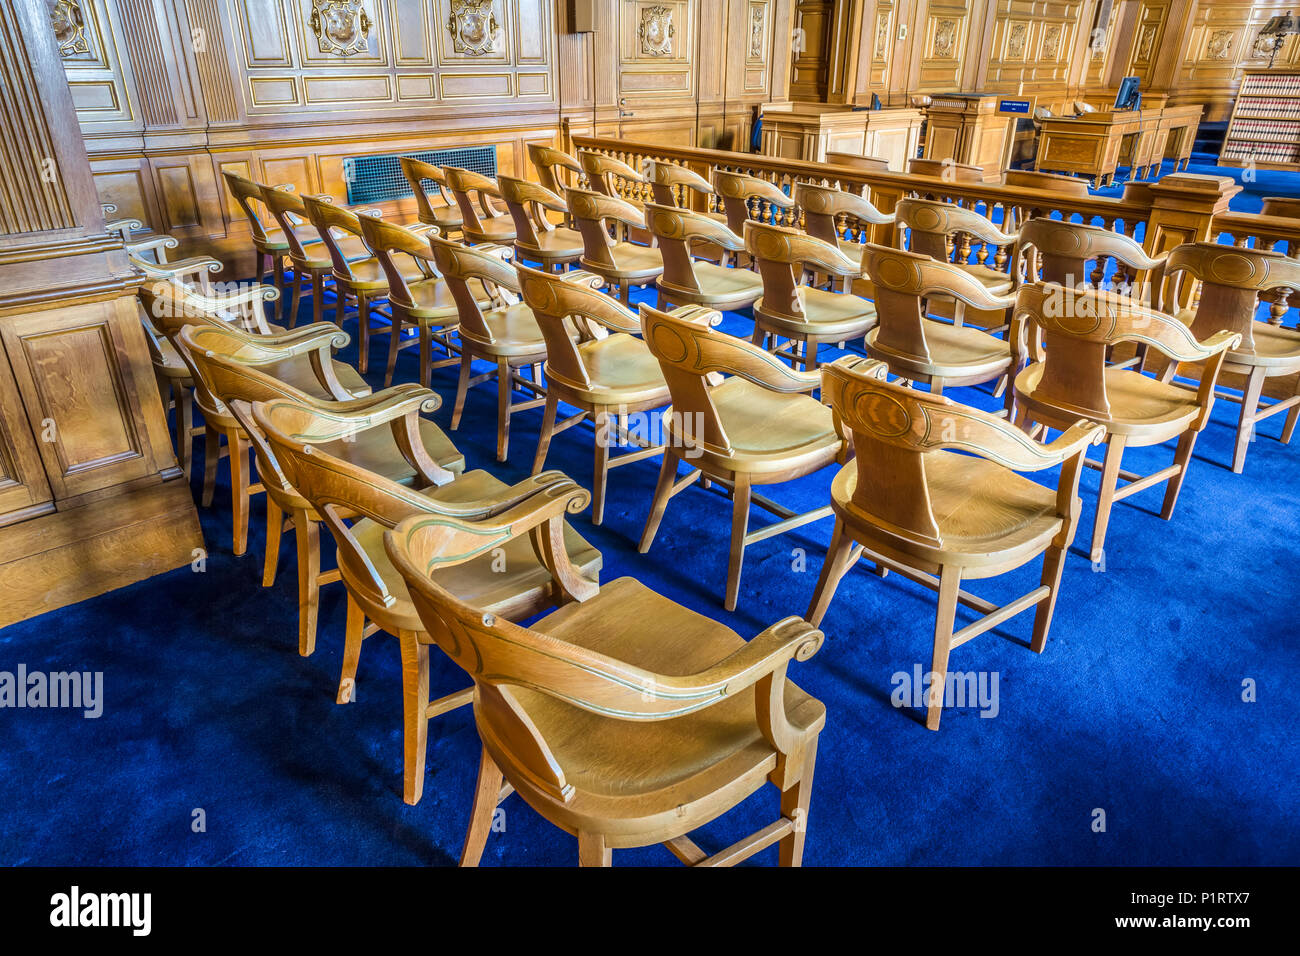 Courtroom Chair Stock Photos Amp Courtroom Chair Stock